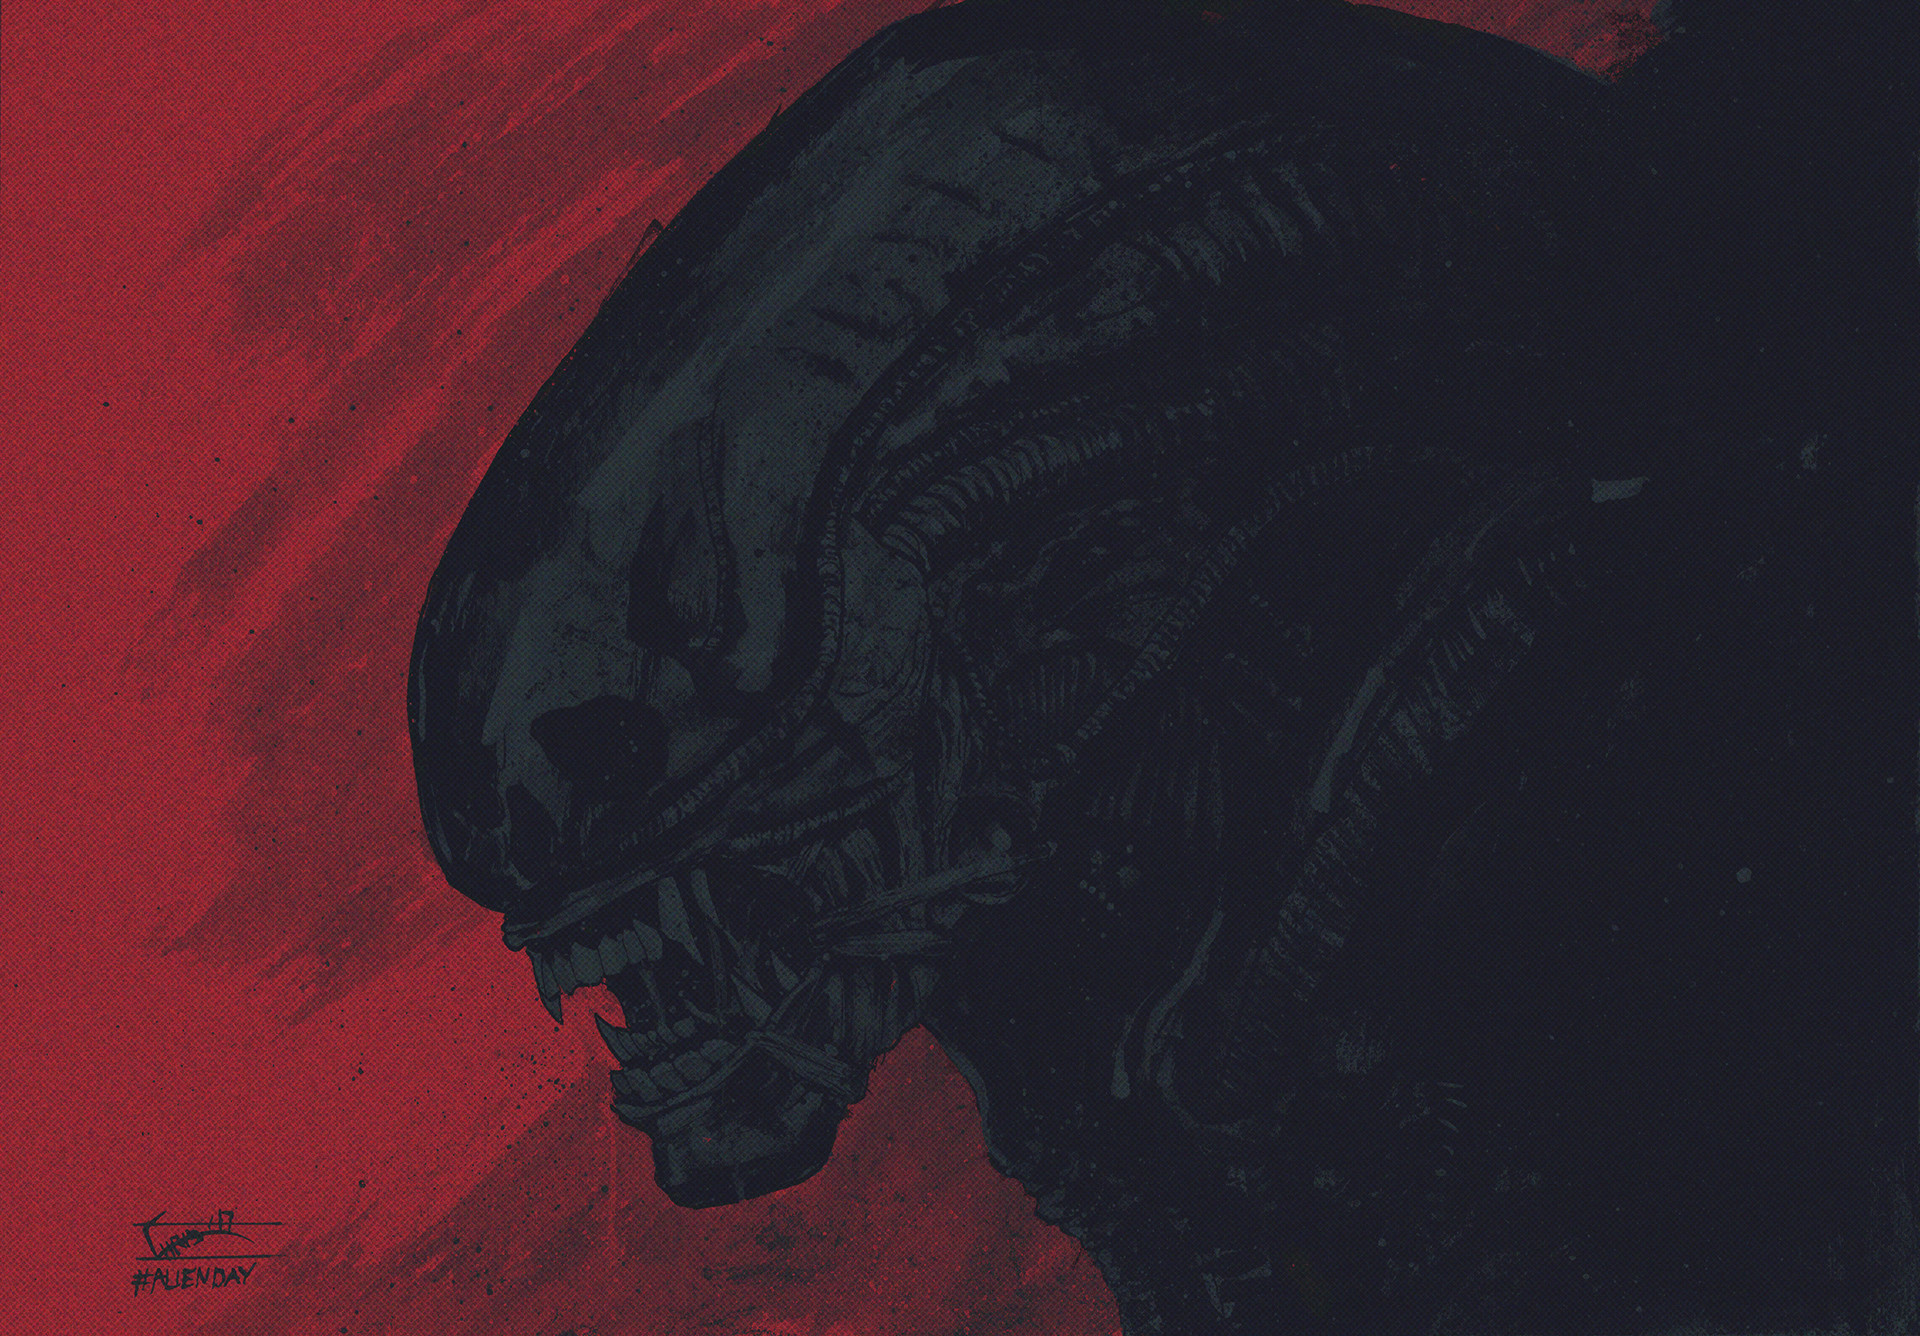 Chris shehan alien 4 26 17 color